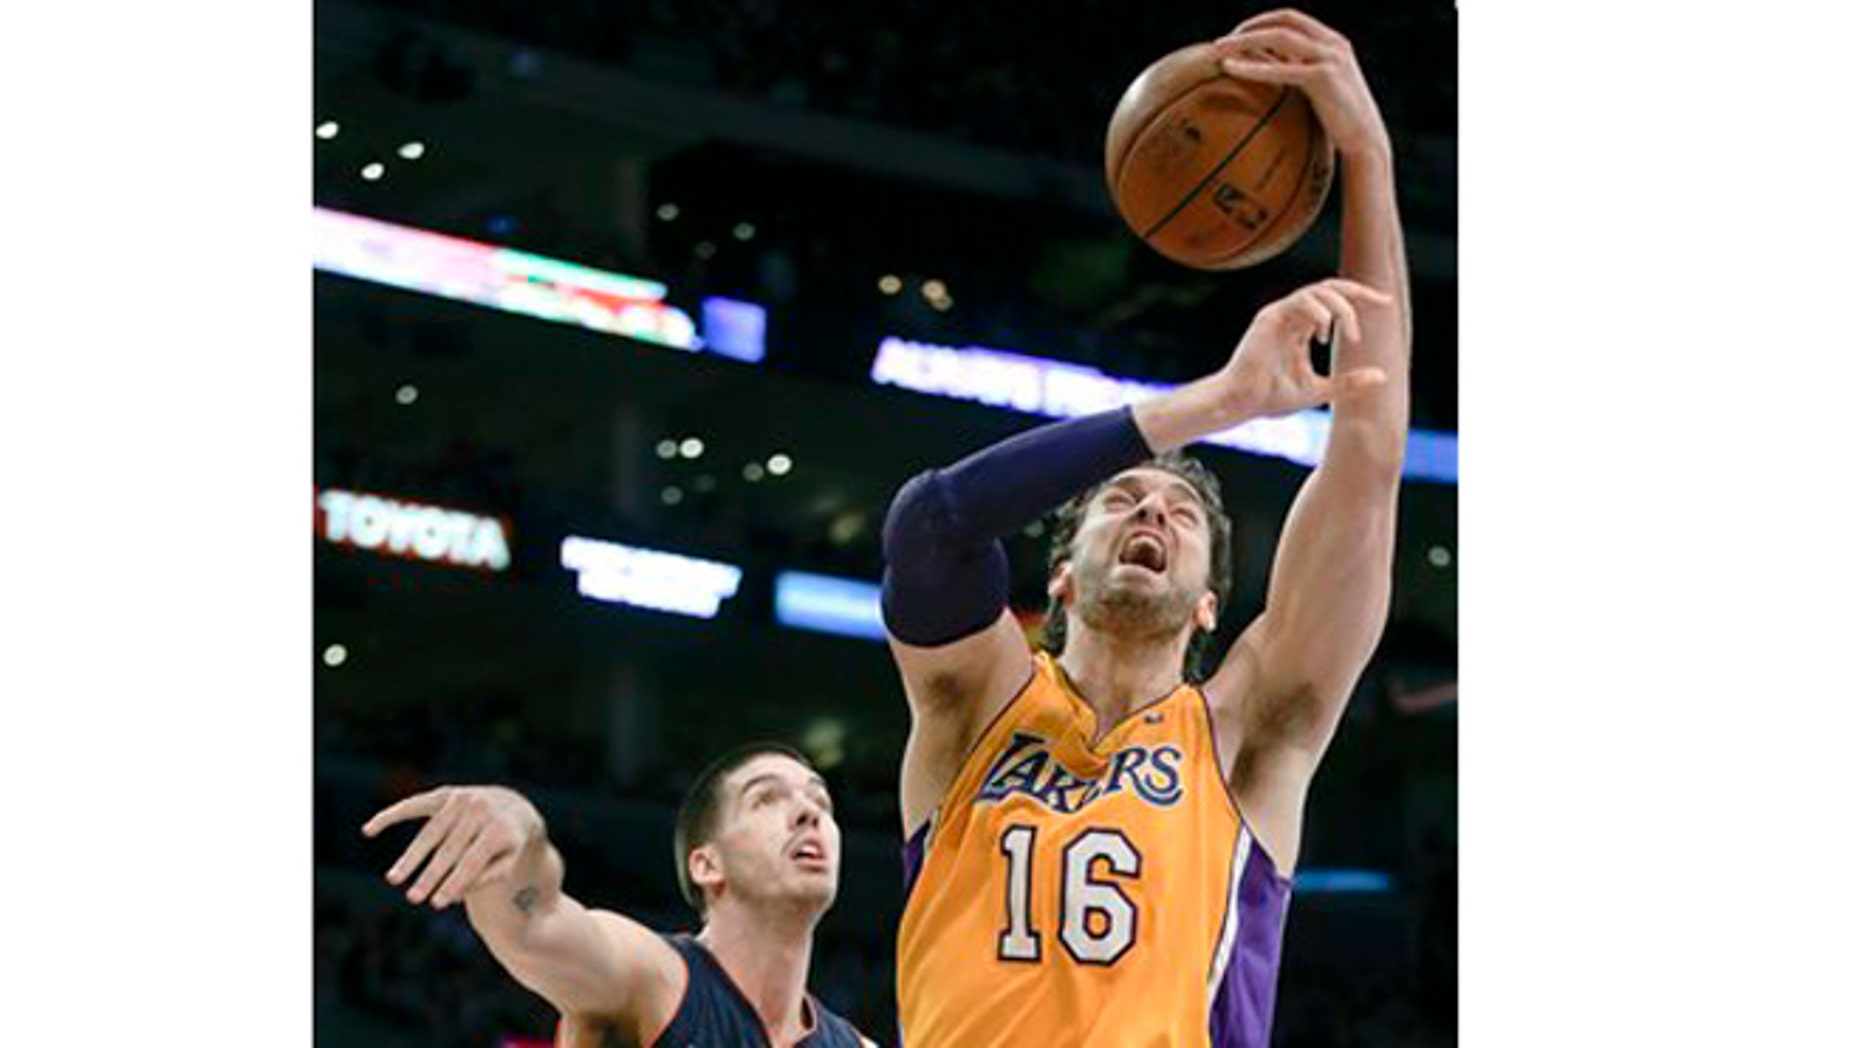 Los Angeles Lakers forward Pau Gasol, right, is fouled by Charlotte Bobcats center Byron Mullens during the first half of an NBA basketball game in Los Angeles, Tuesday, Dec. 18, 2012. (AP Photo/Chris Carlson)